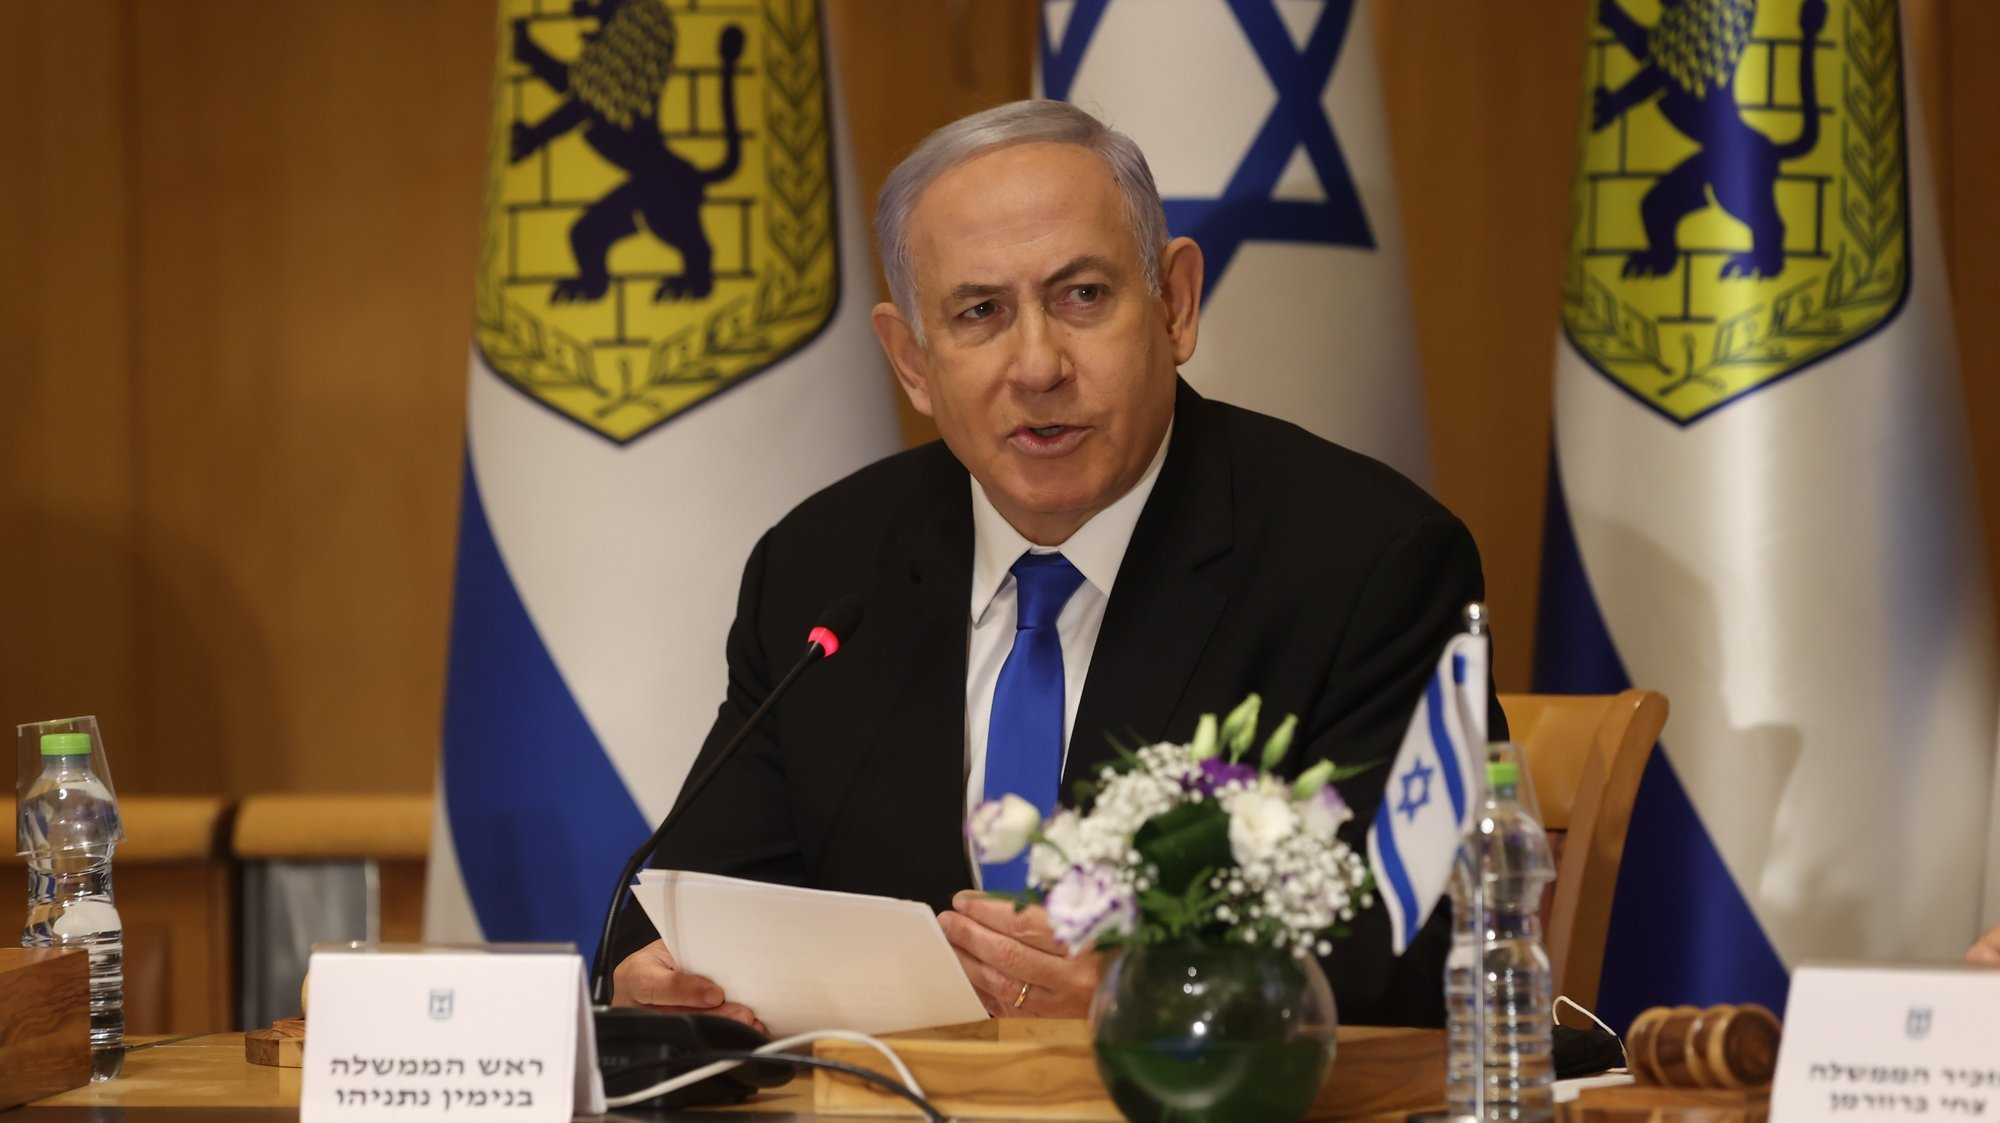 epa09187400 Israeli Prime Minister Benjamin Netanyahu  during a special cabinet meeting on the occasion of Jerusalem Day in Jerusalem, Israel, 09 May 2021. Jerusalem Day is an Israeli national holiday that celebrates the establishment of Israeli control over the Old City in the aftermath of the June 1967 Six-Day War.  EPA/AMIT SHABI/ POOL